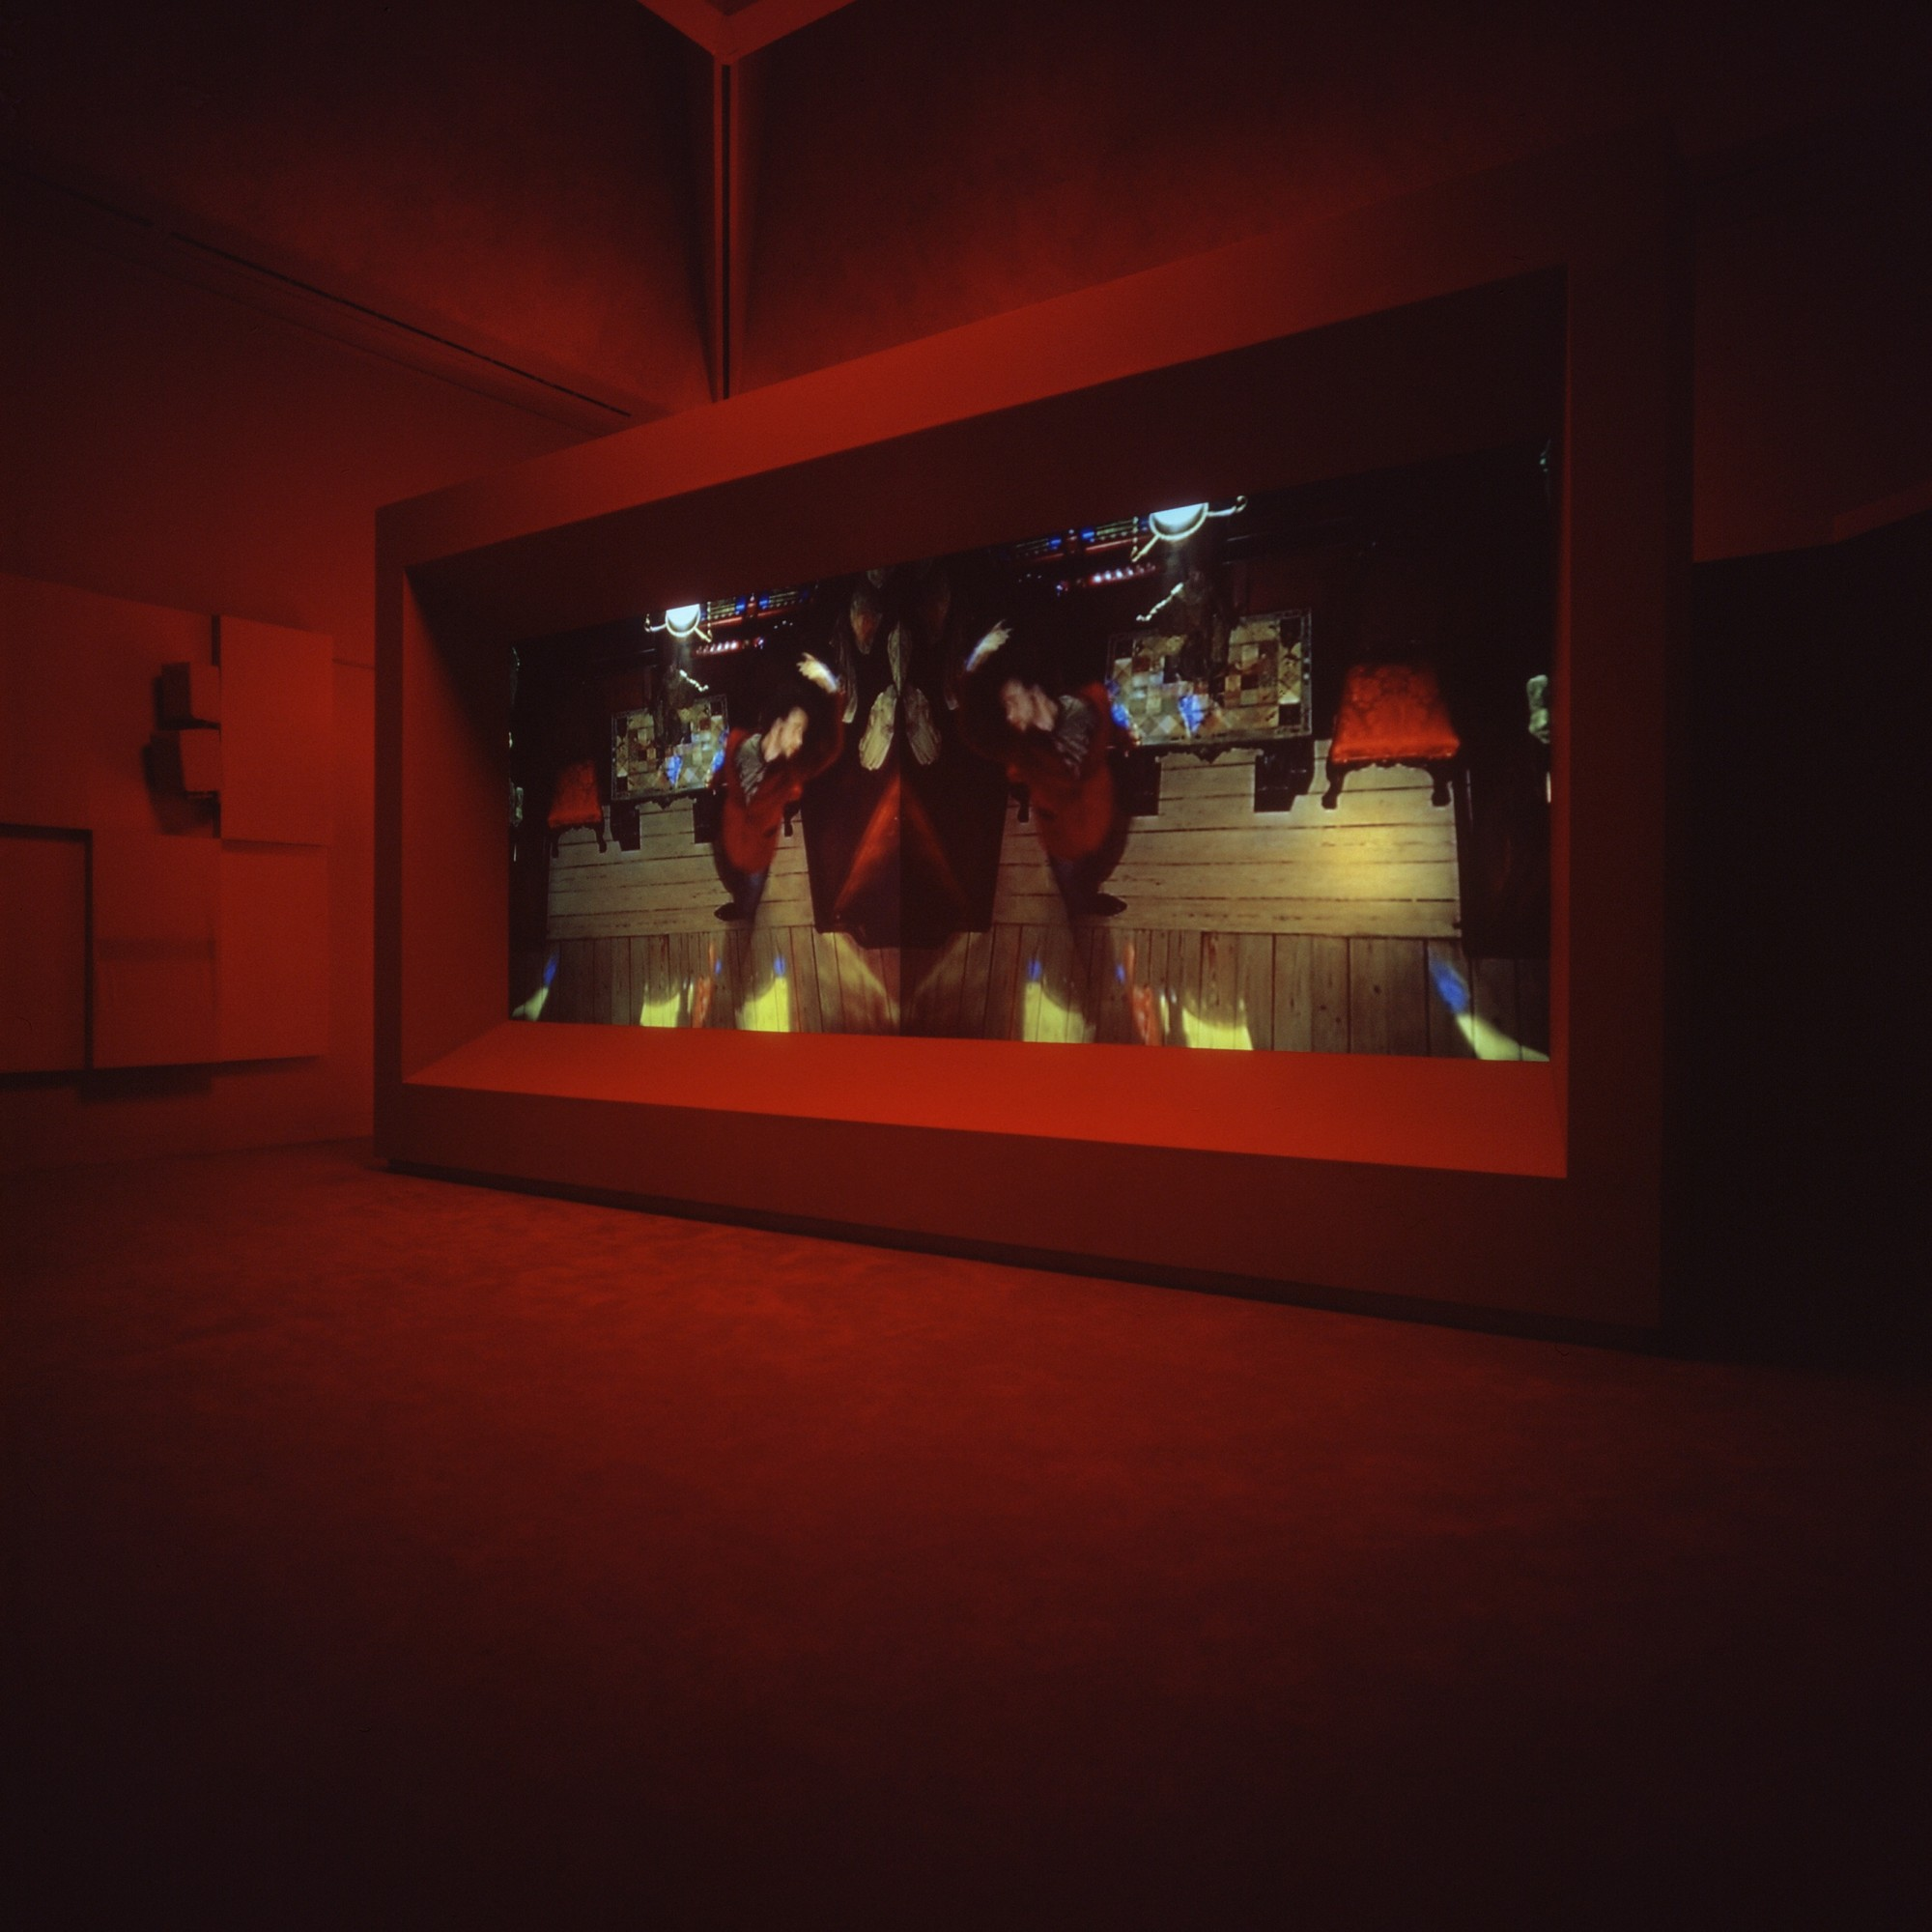 Turner Prize 2001. Tate Britain, London  7', double-screen projection, 16mm film transferred to digital, colour, sound